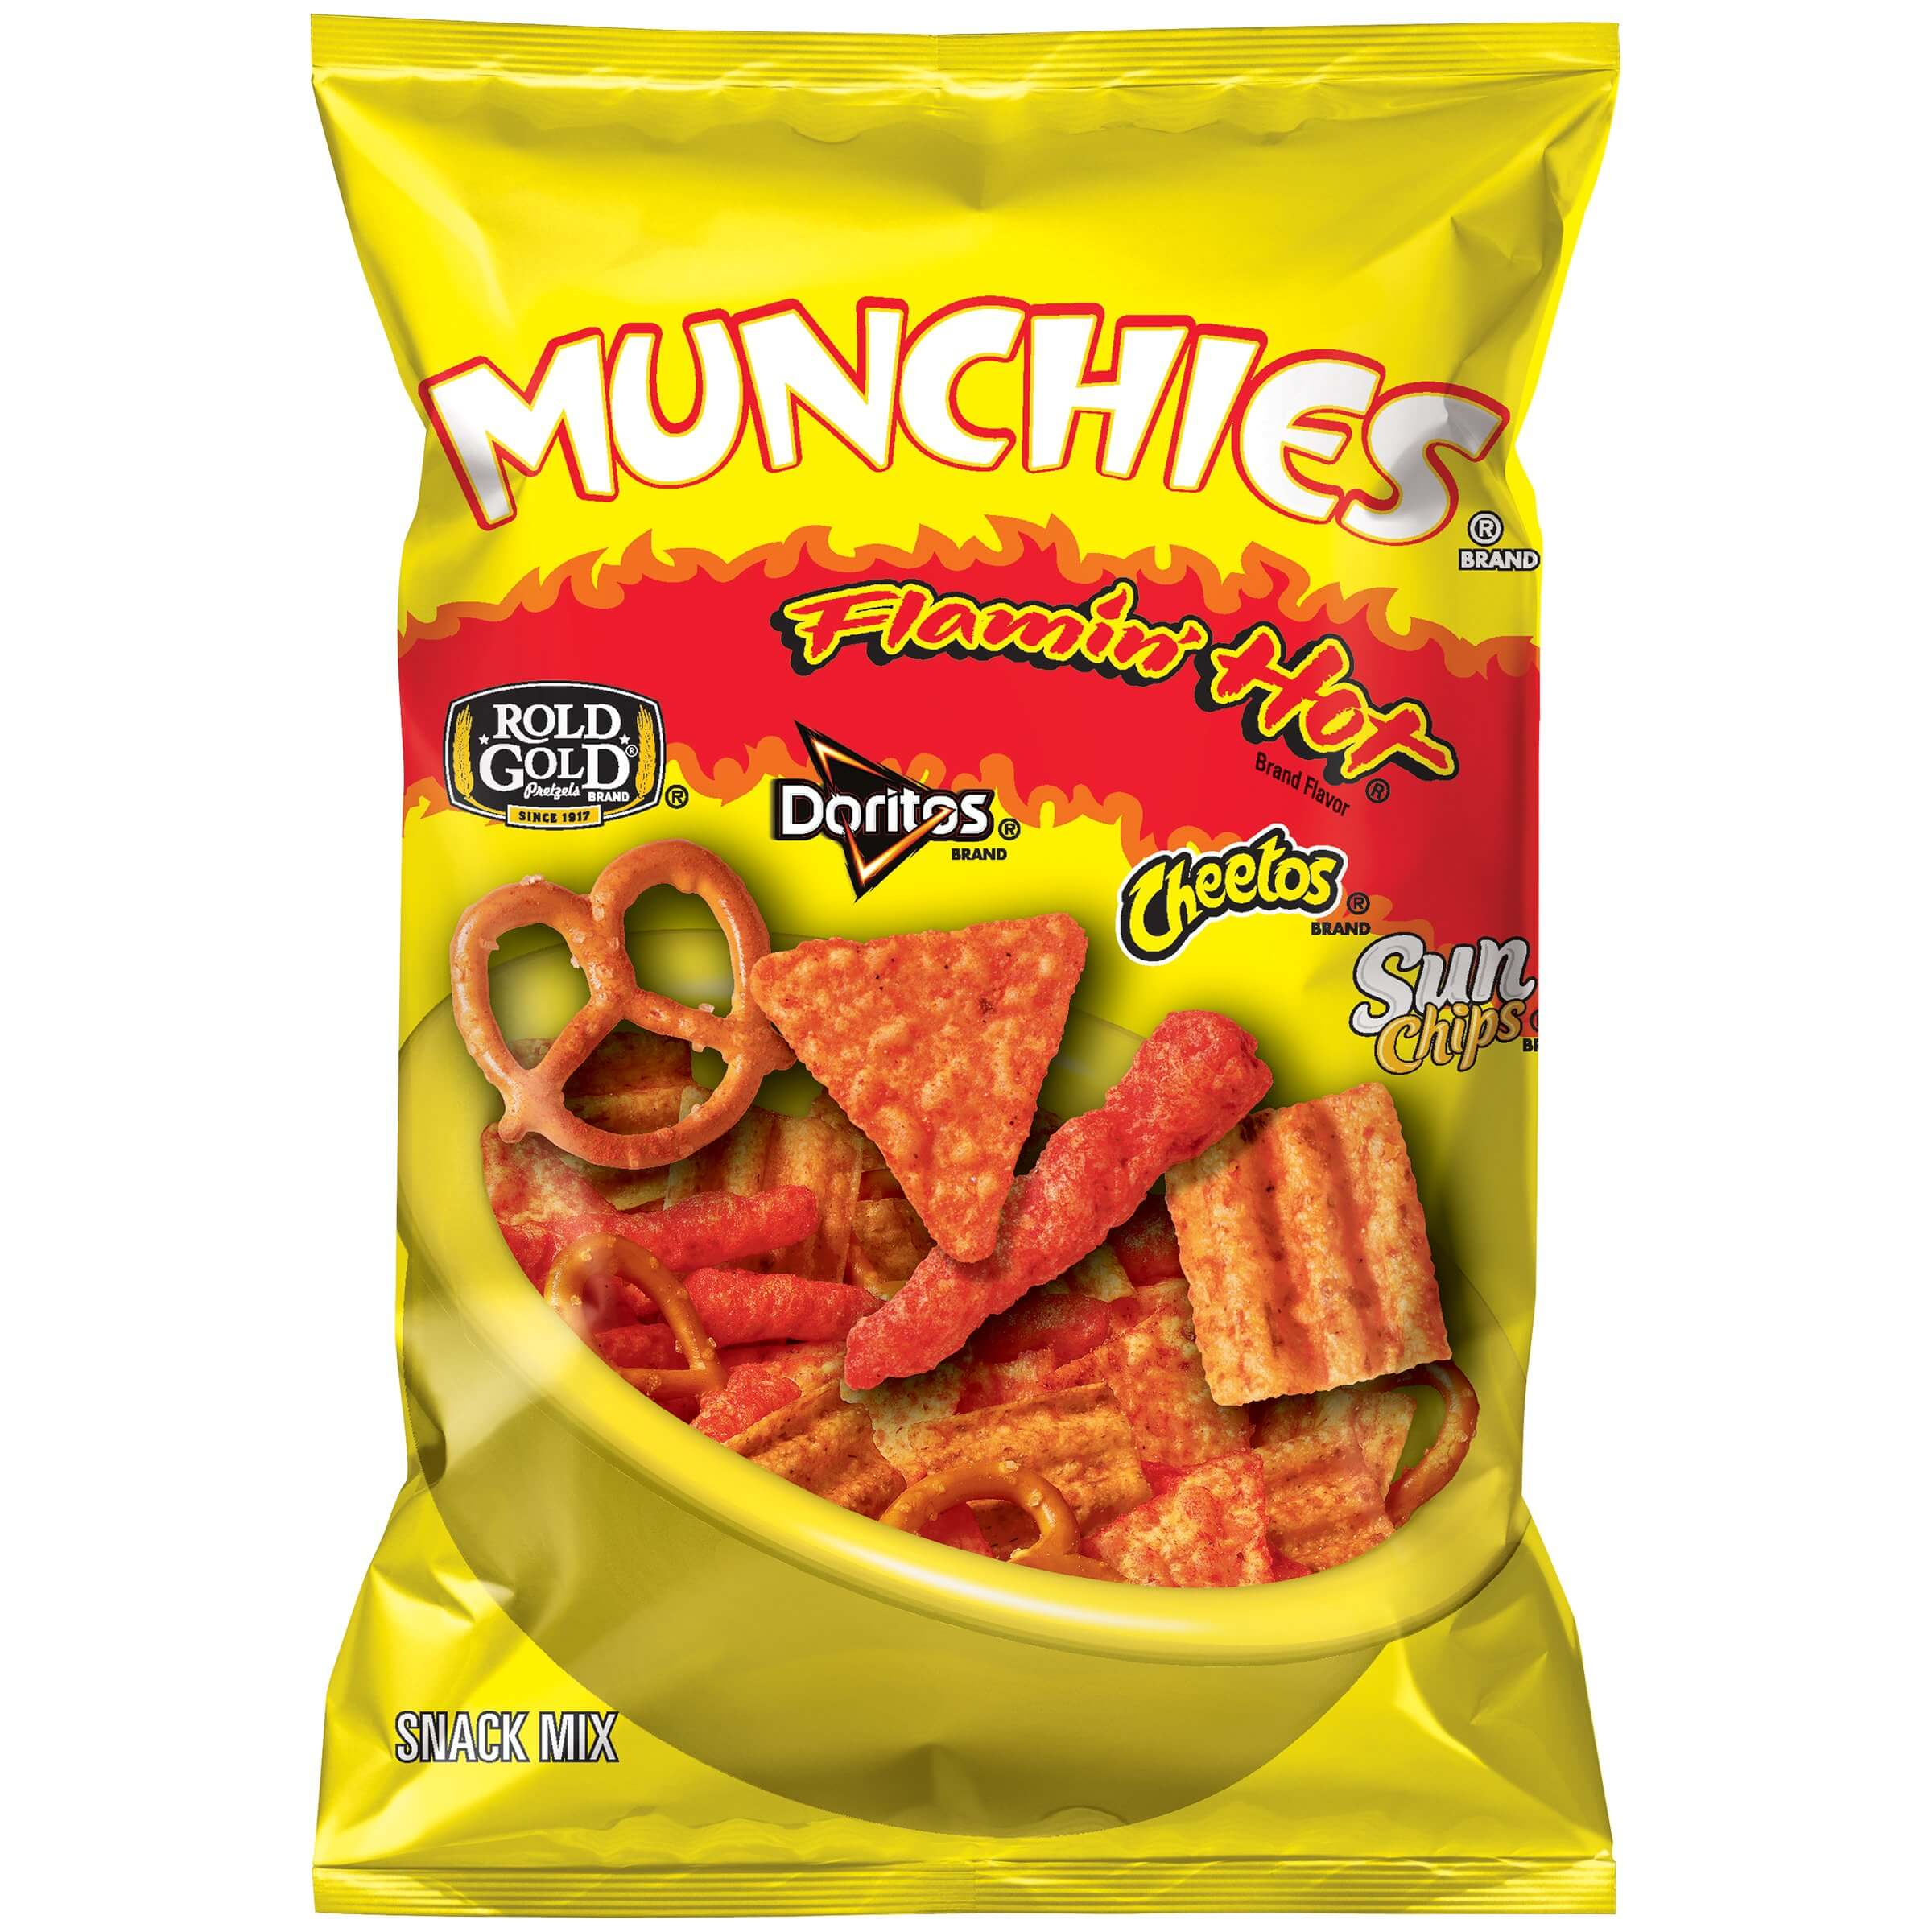 Munchies Flamin Hot Snack Mix 262g